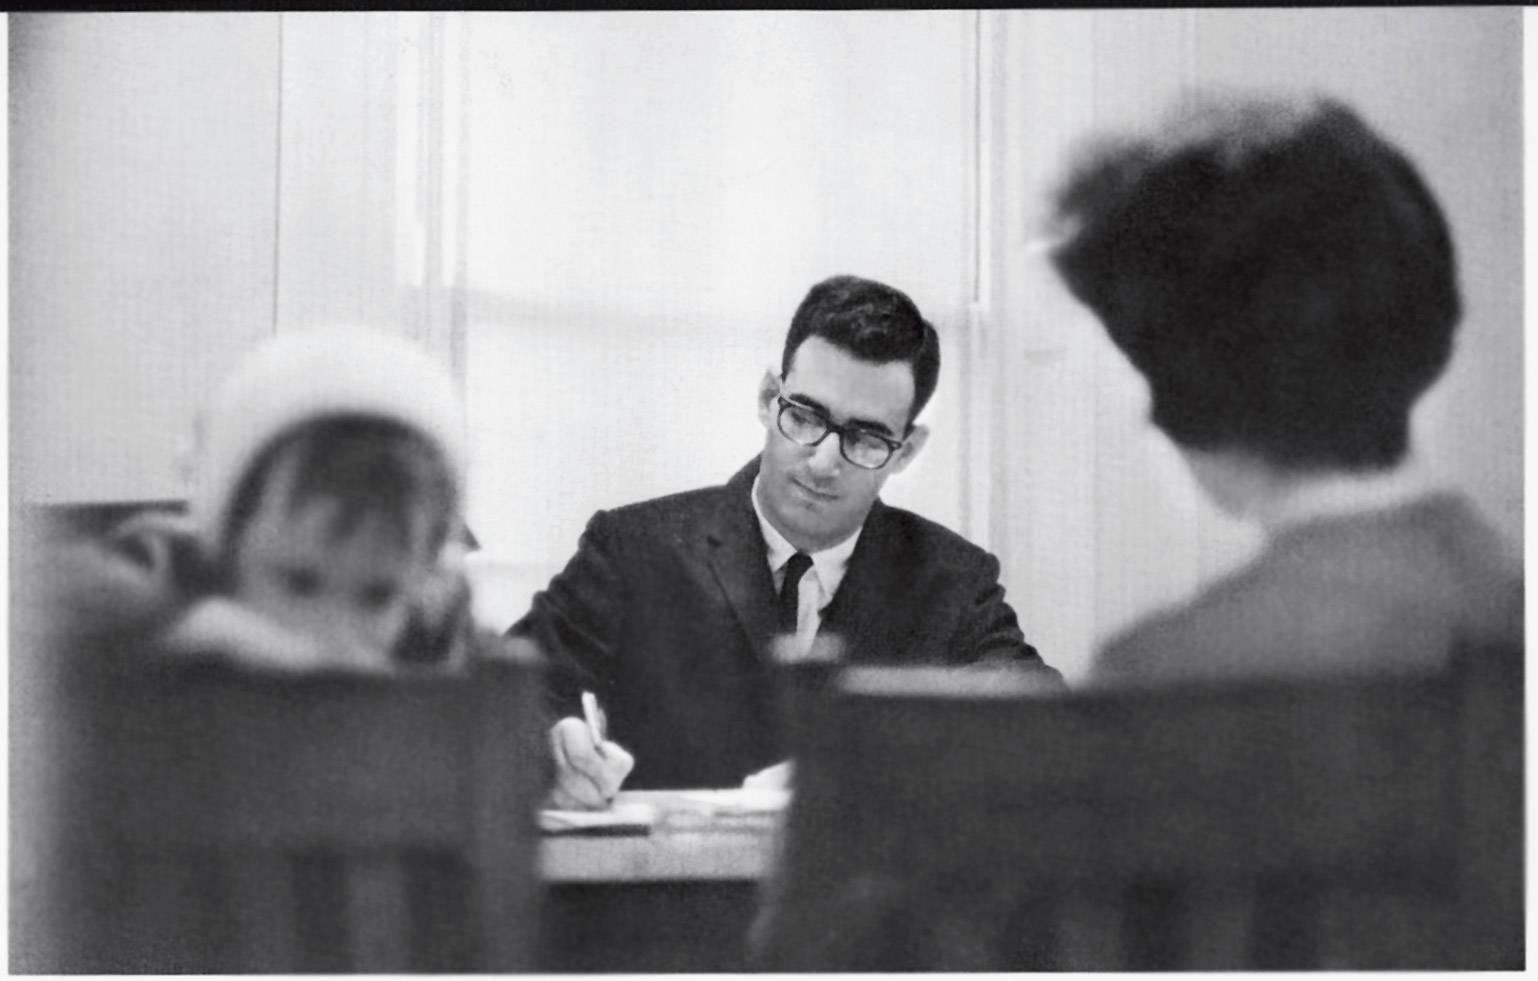 Earl Leiken '67 meets with a client in 1966